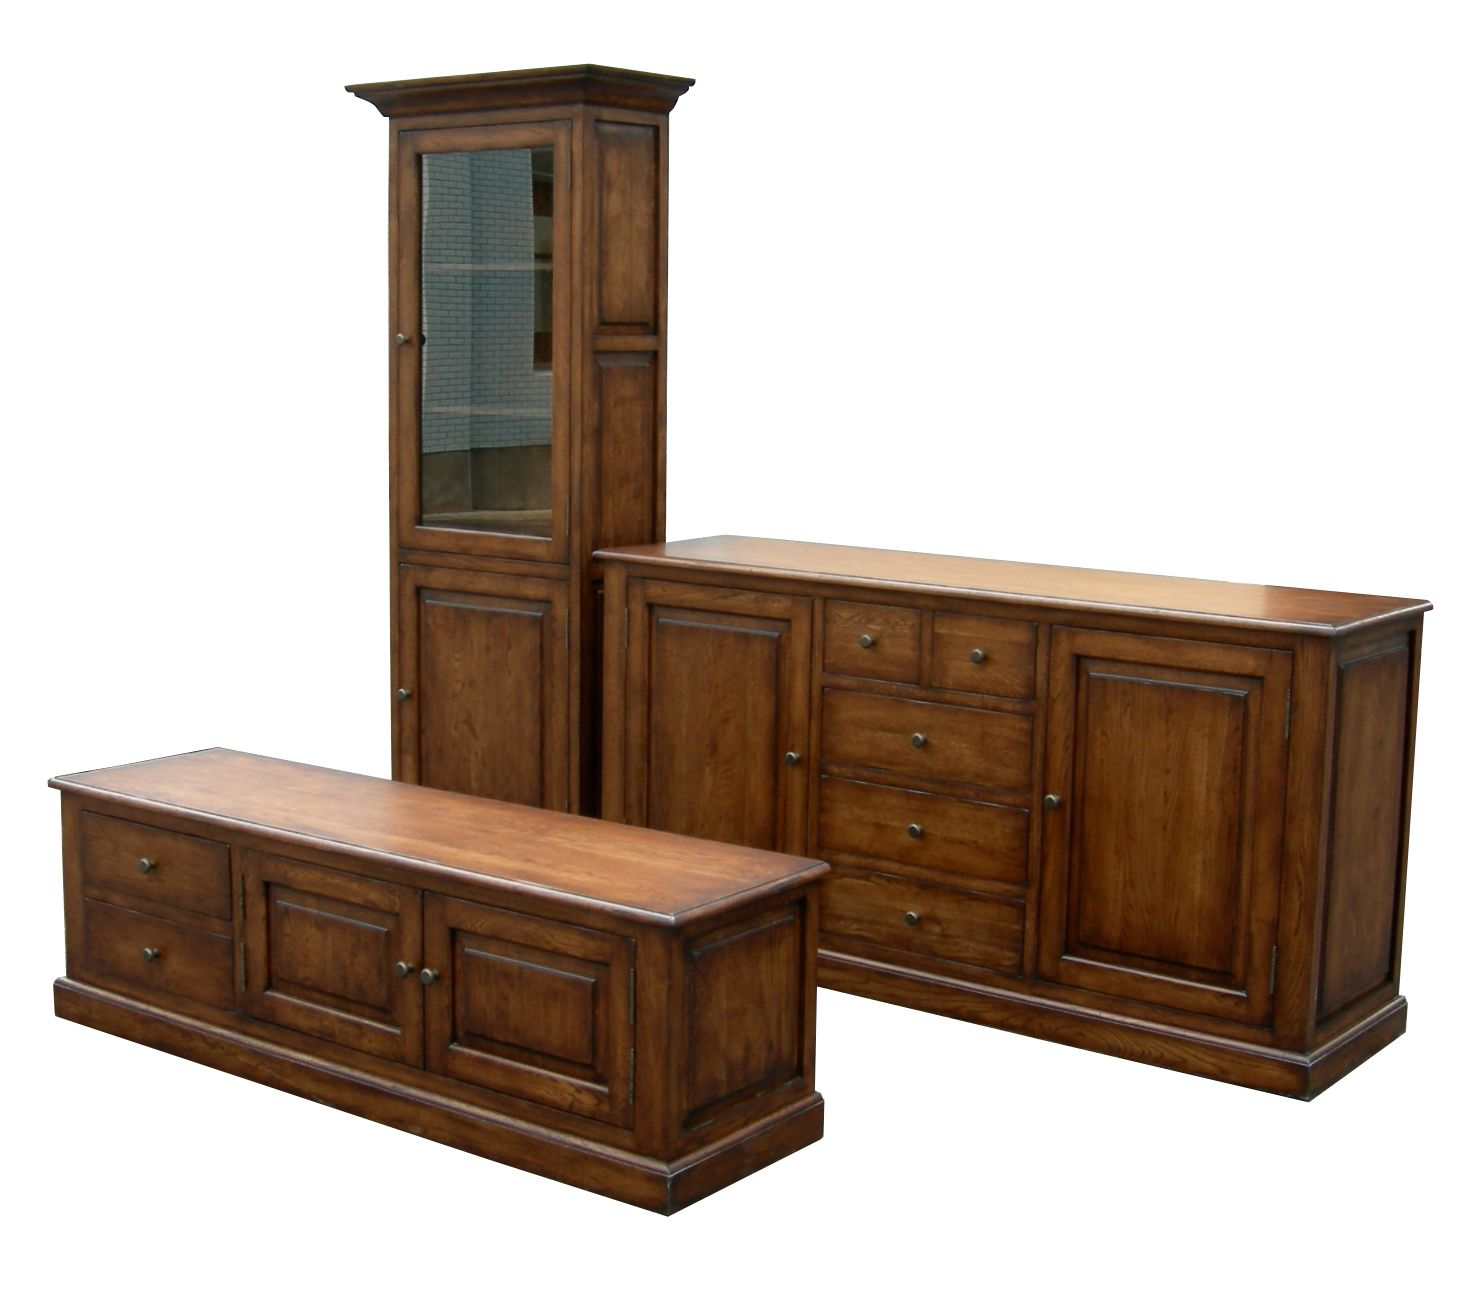 Furnitures Designs kerala wooden furniture if you want to learn woodworking